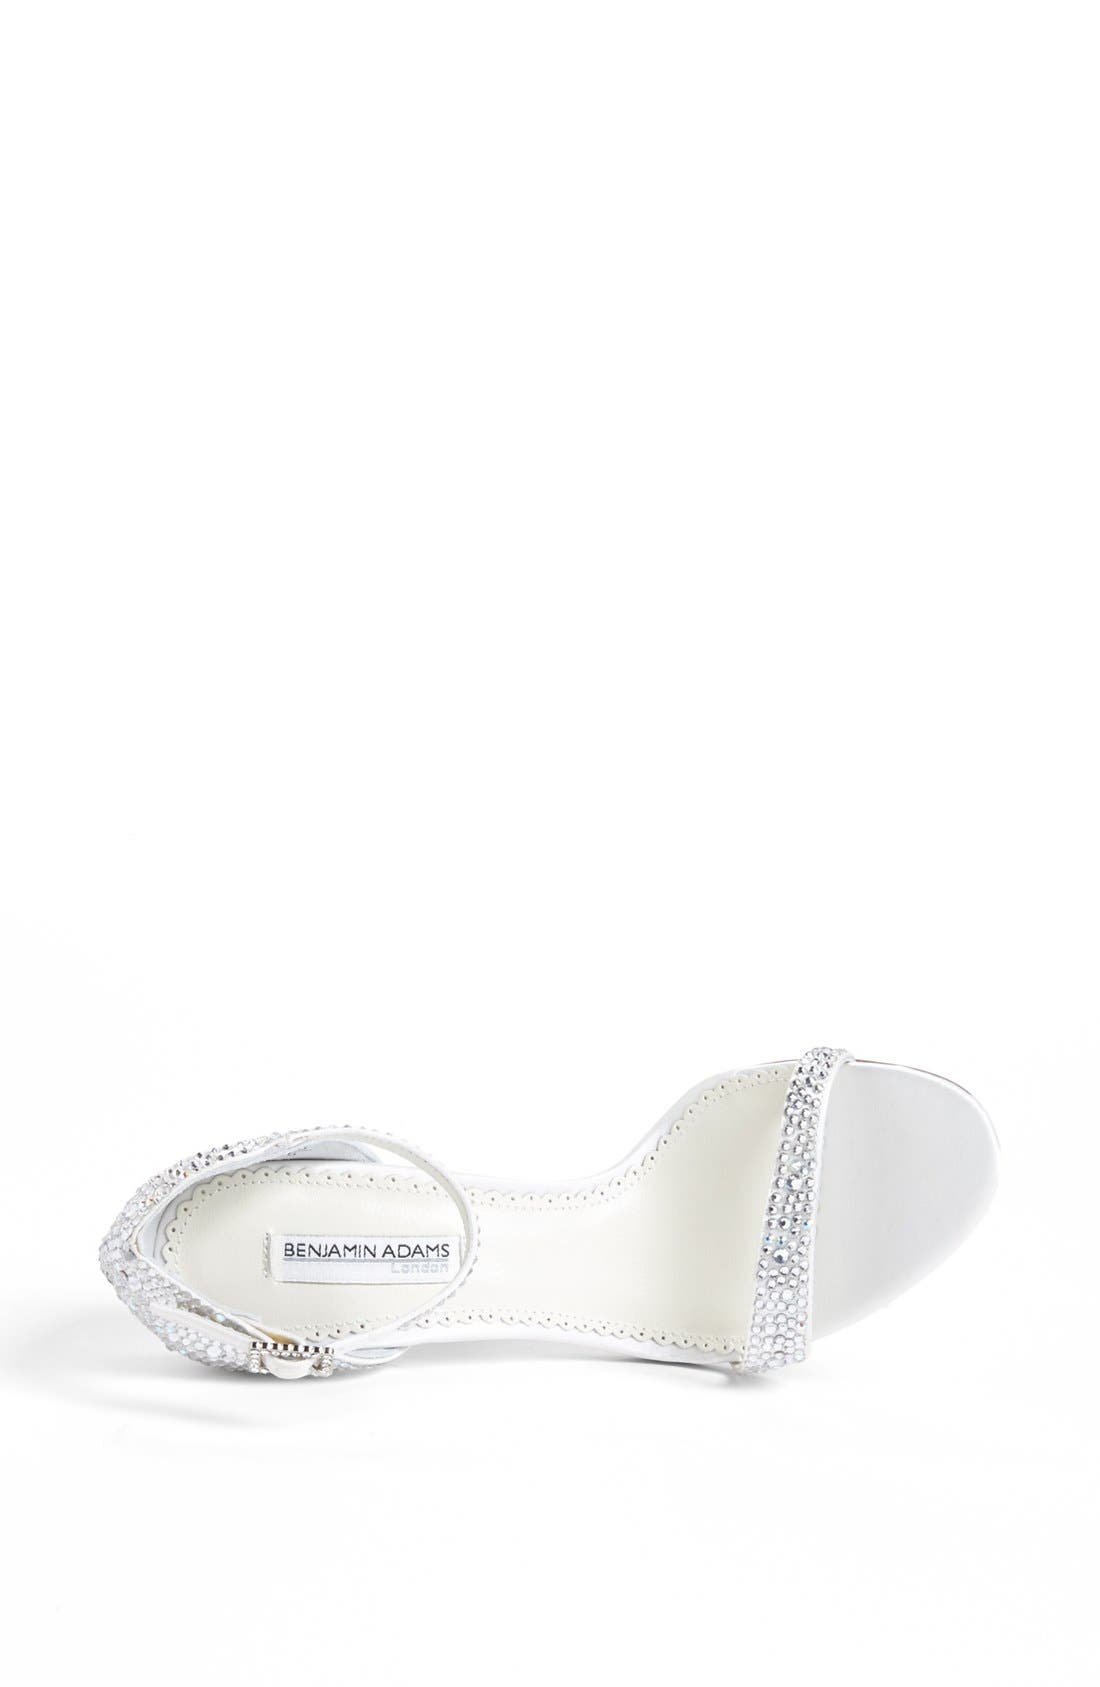 Benjamin Adams Sandal,                             Alternate thumbnail 3, color,                             Ivory